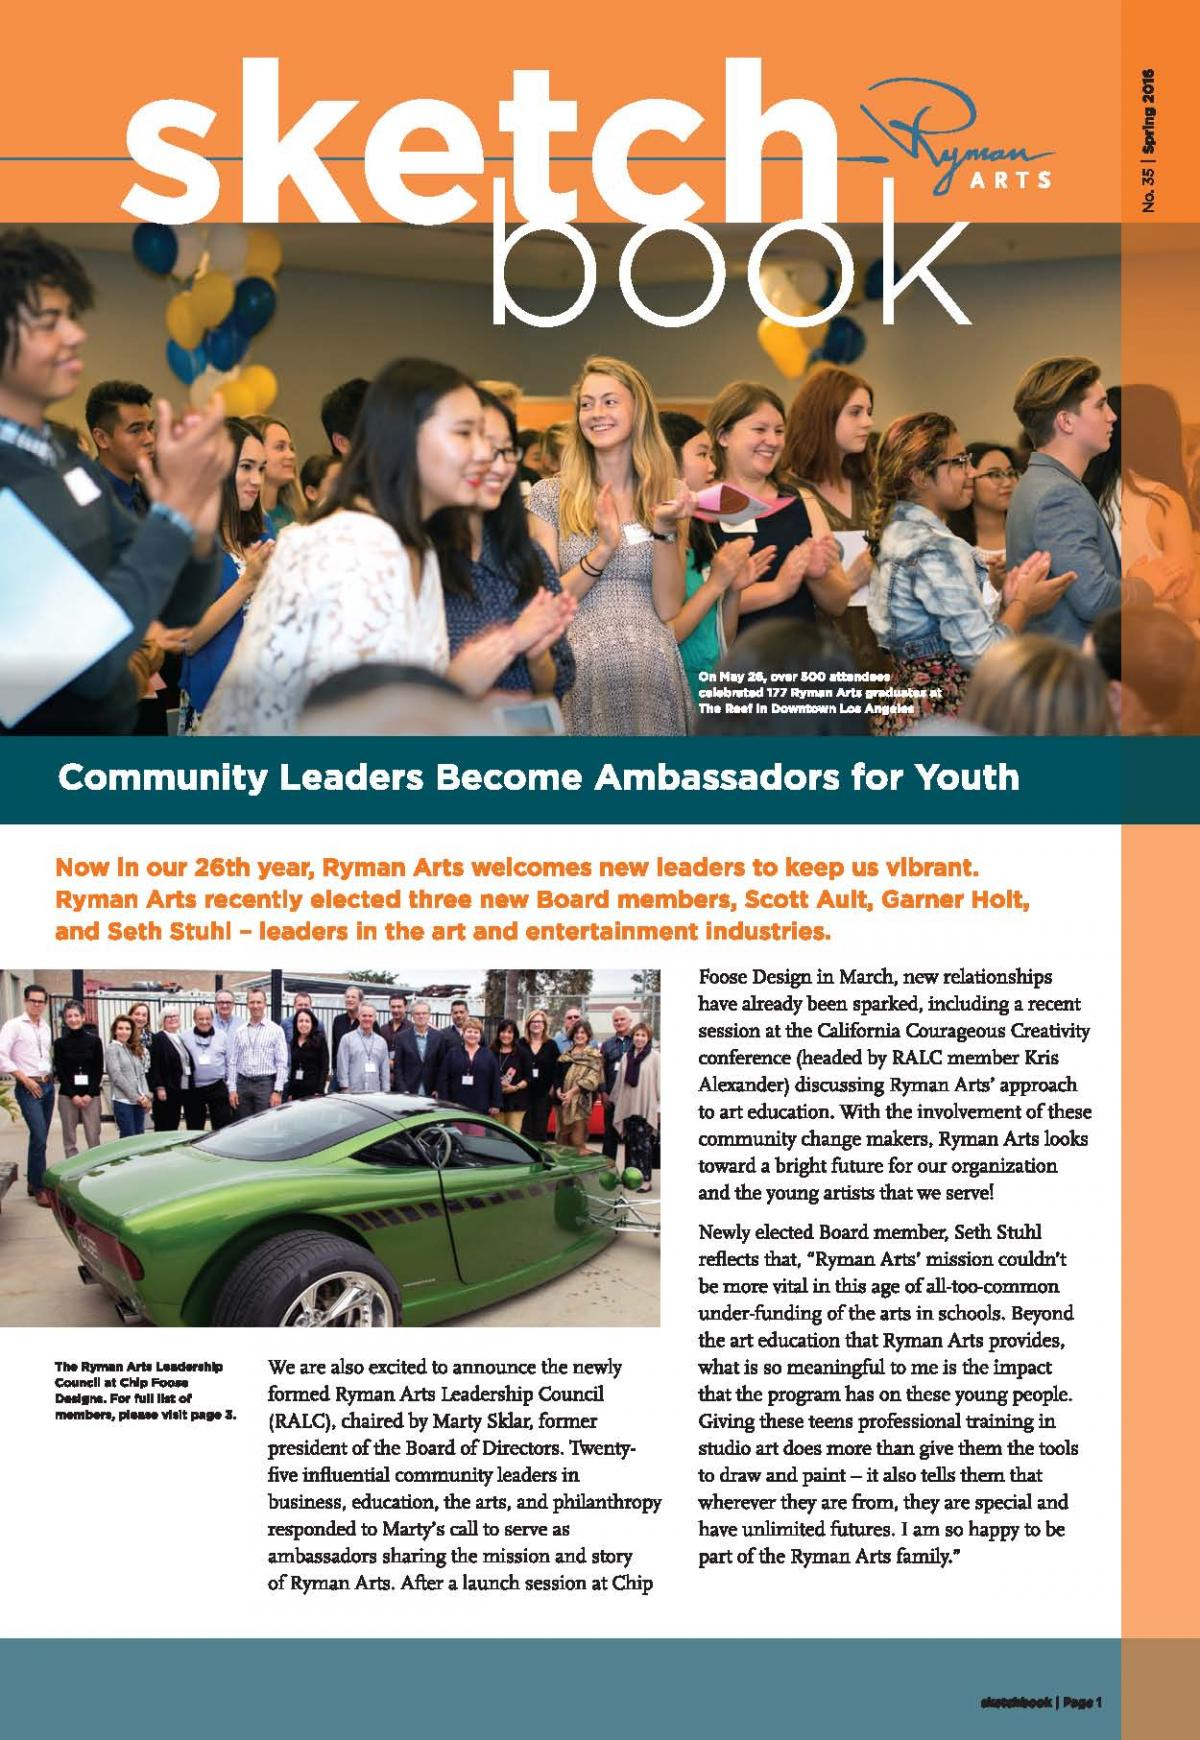 Ryman Arts Sketchbook Number 35, Spring 2016: Community Leaders Become Ambassadors for Youth